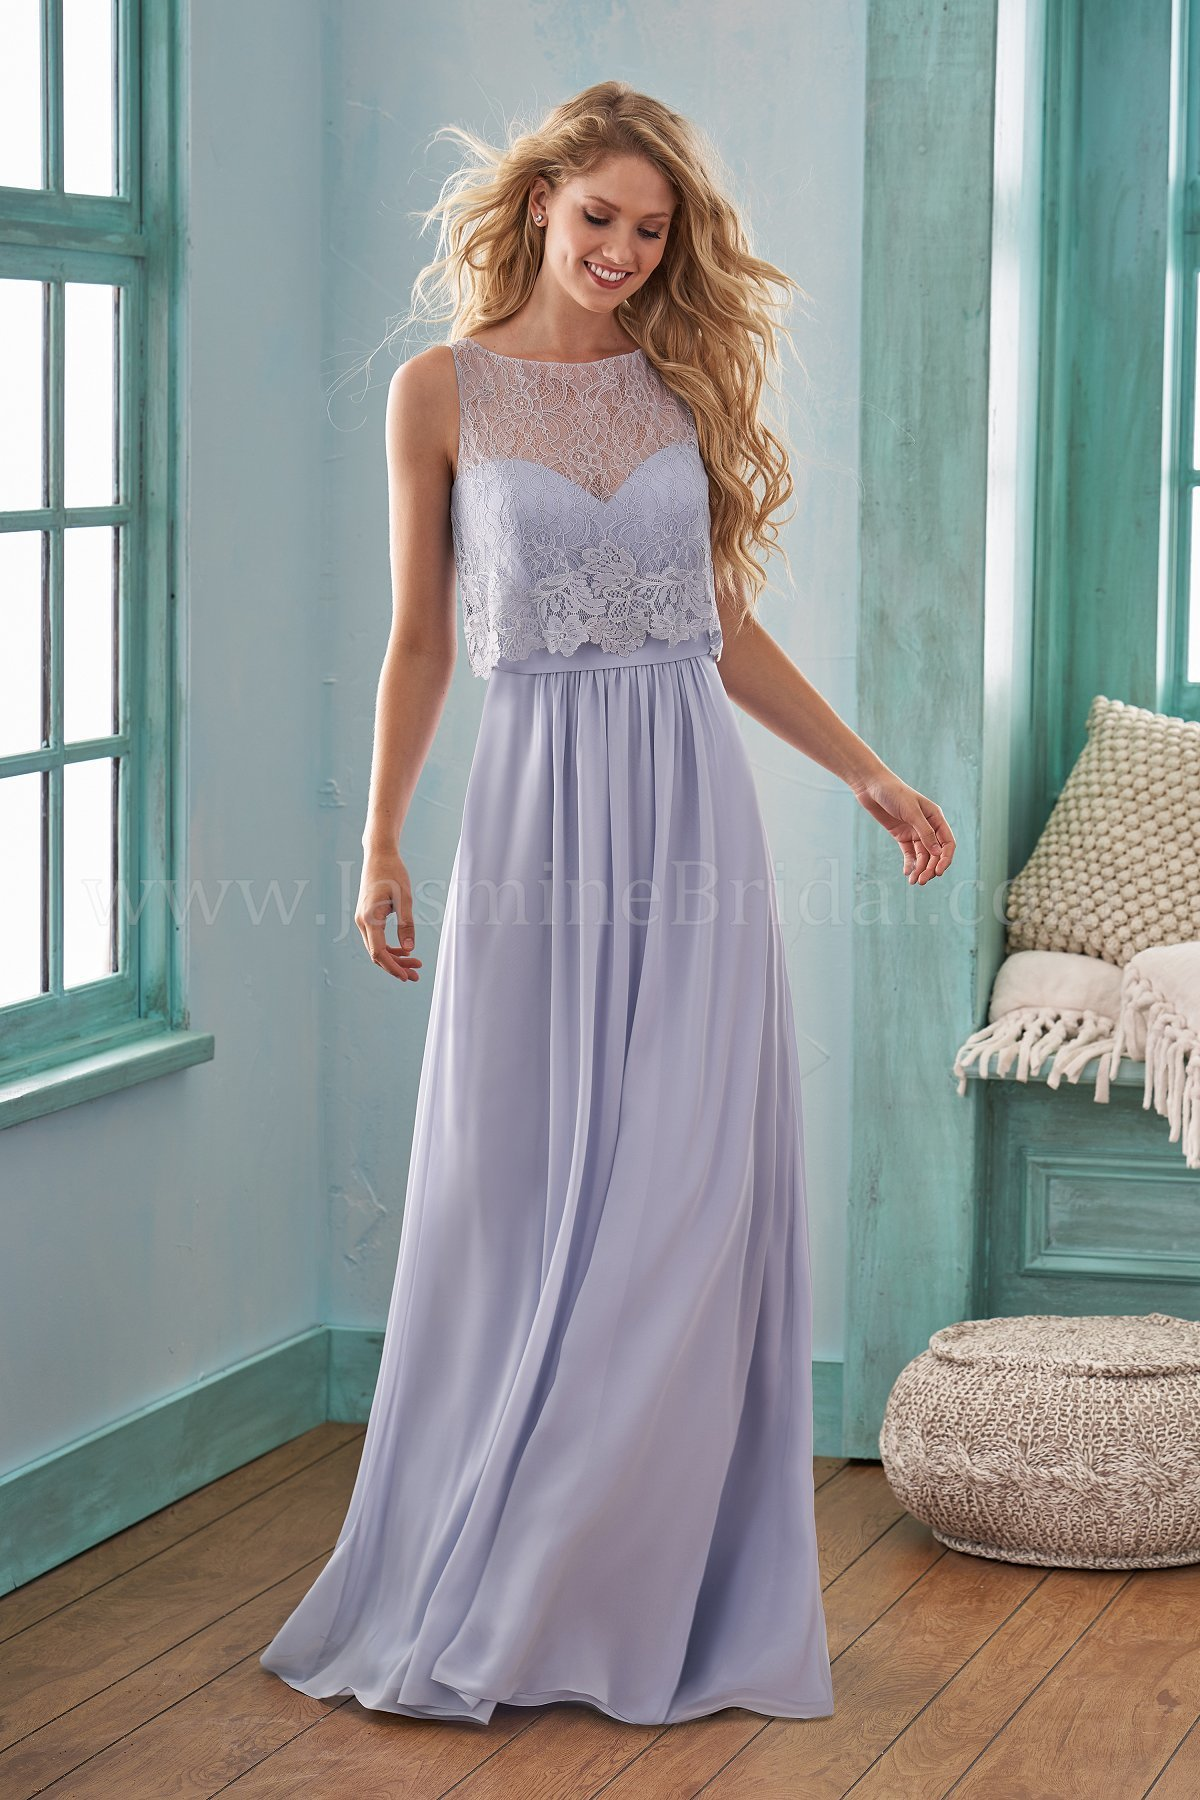 bridesmaid-dresses-B203011-F